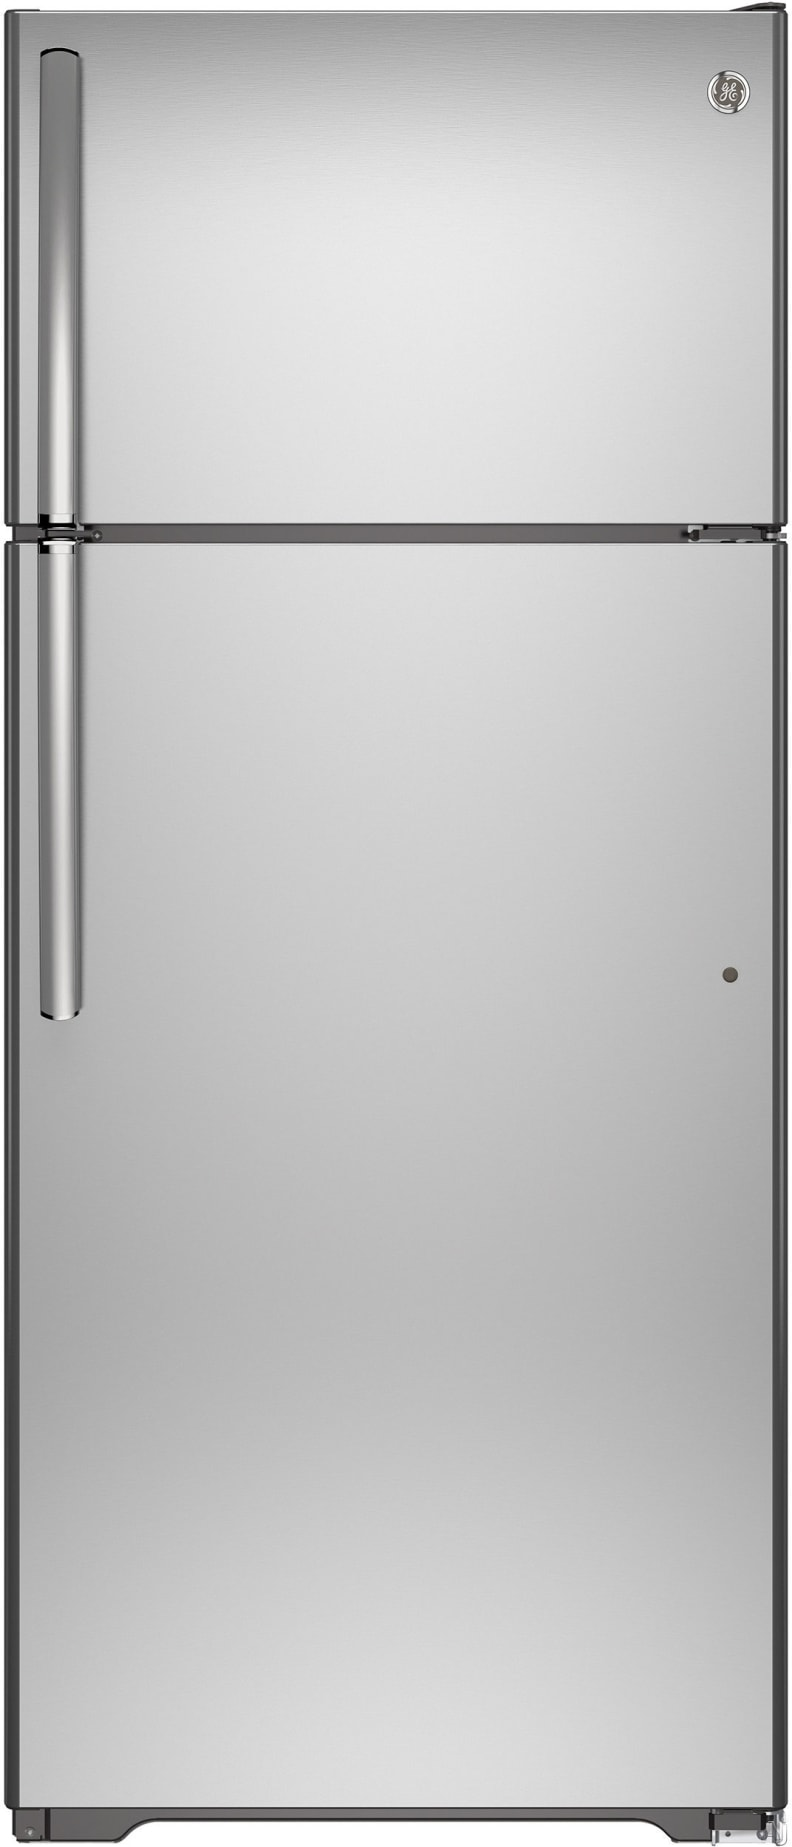 Buying the GE GAS18PSJSS is one of the more affordable ways to get stainless into your kitchen.